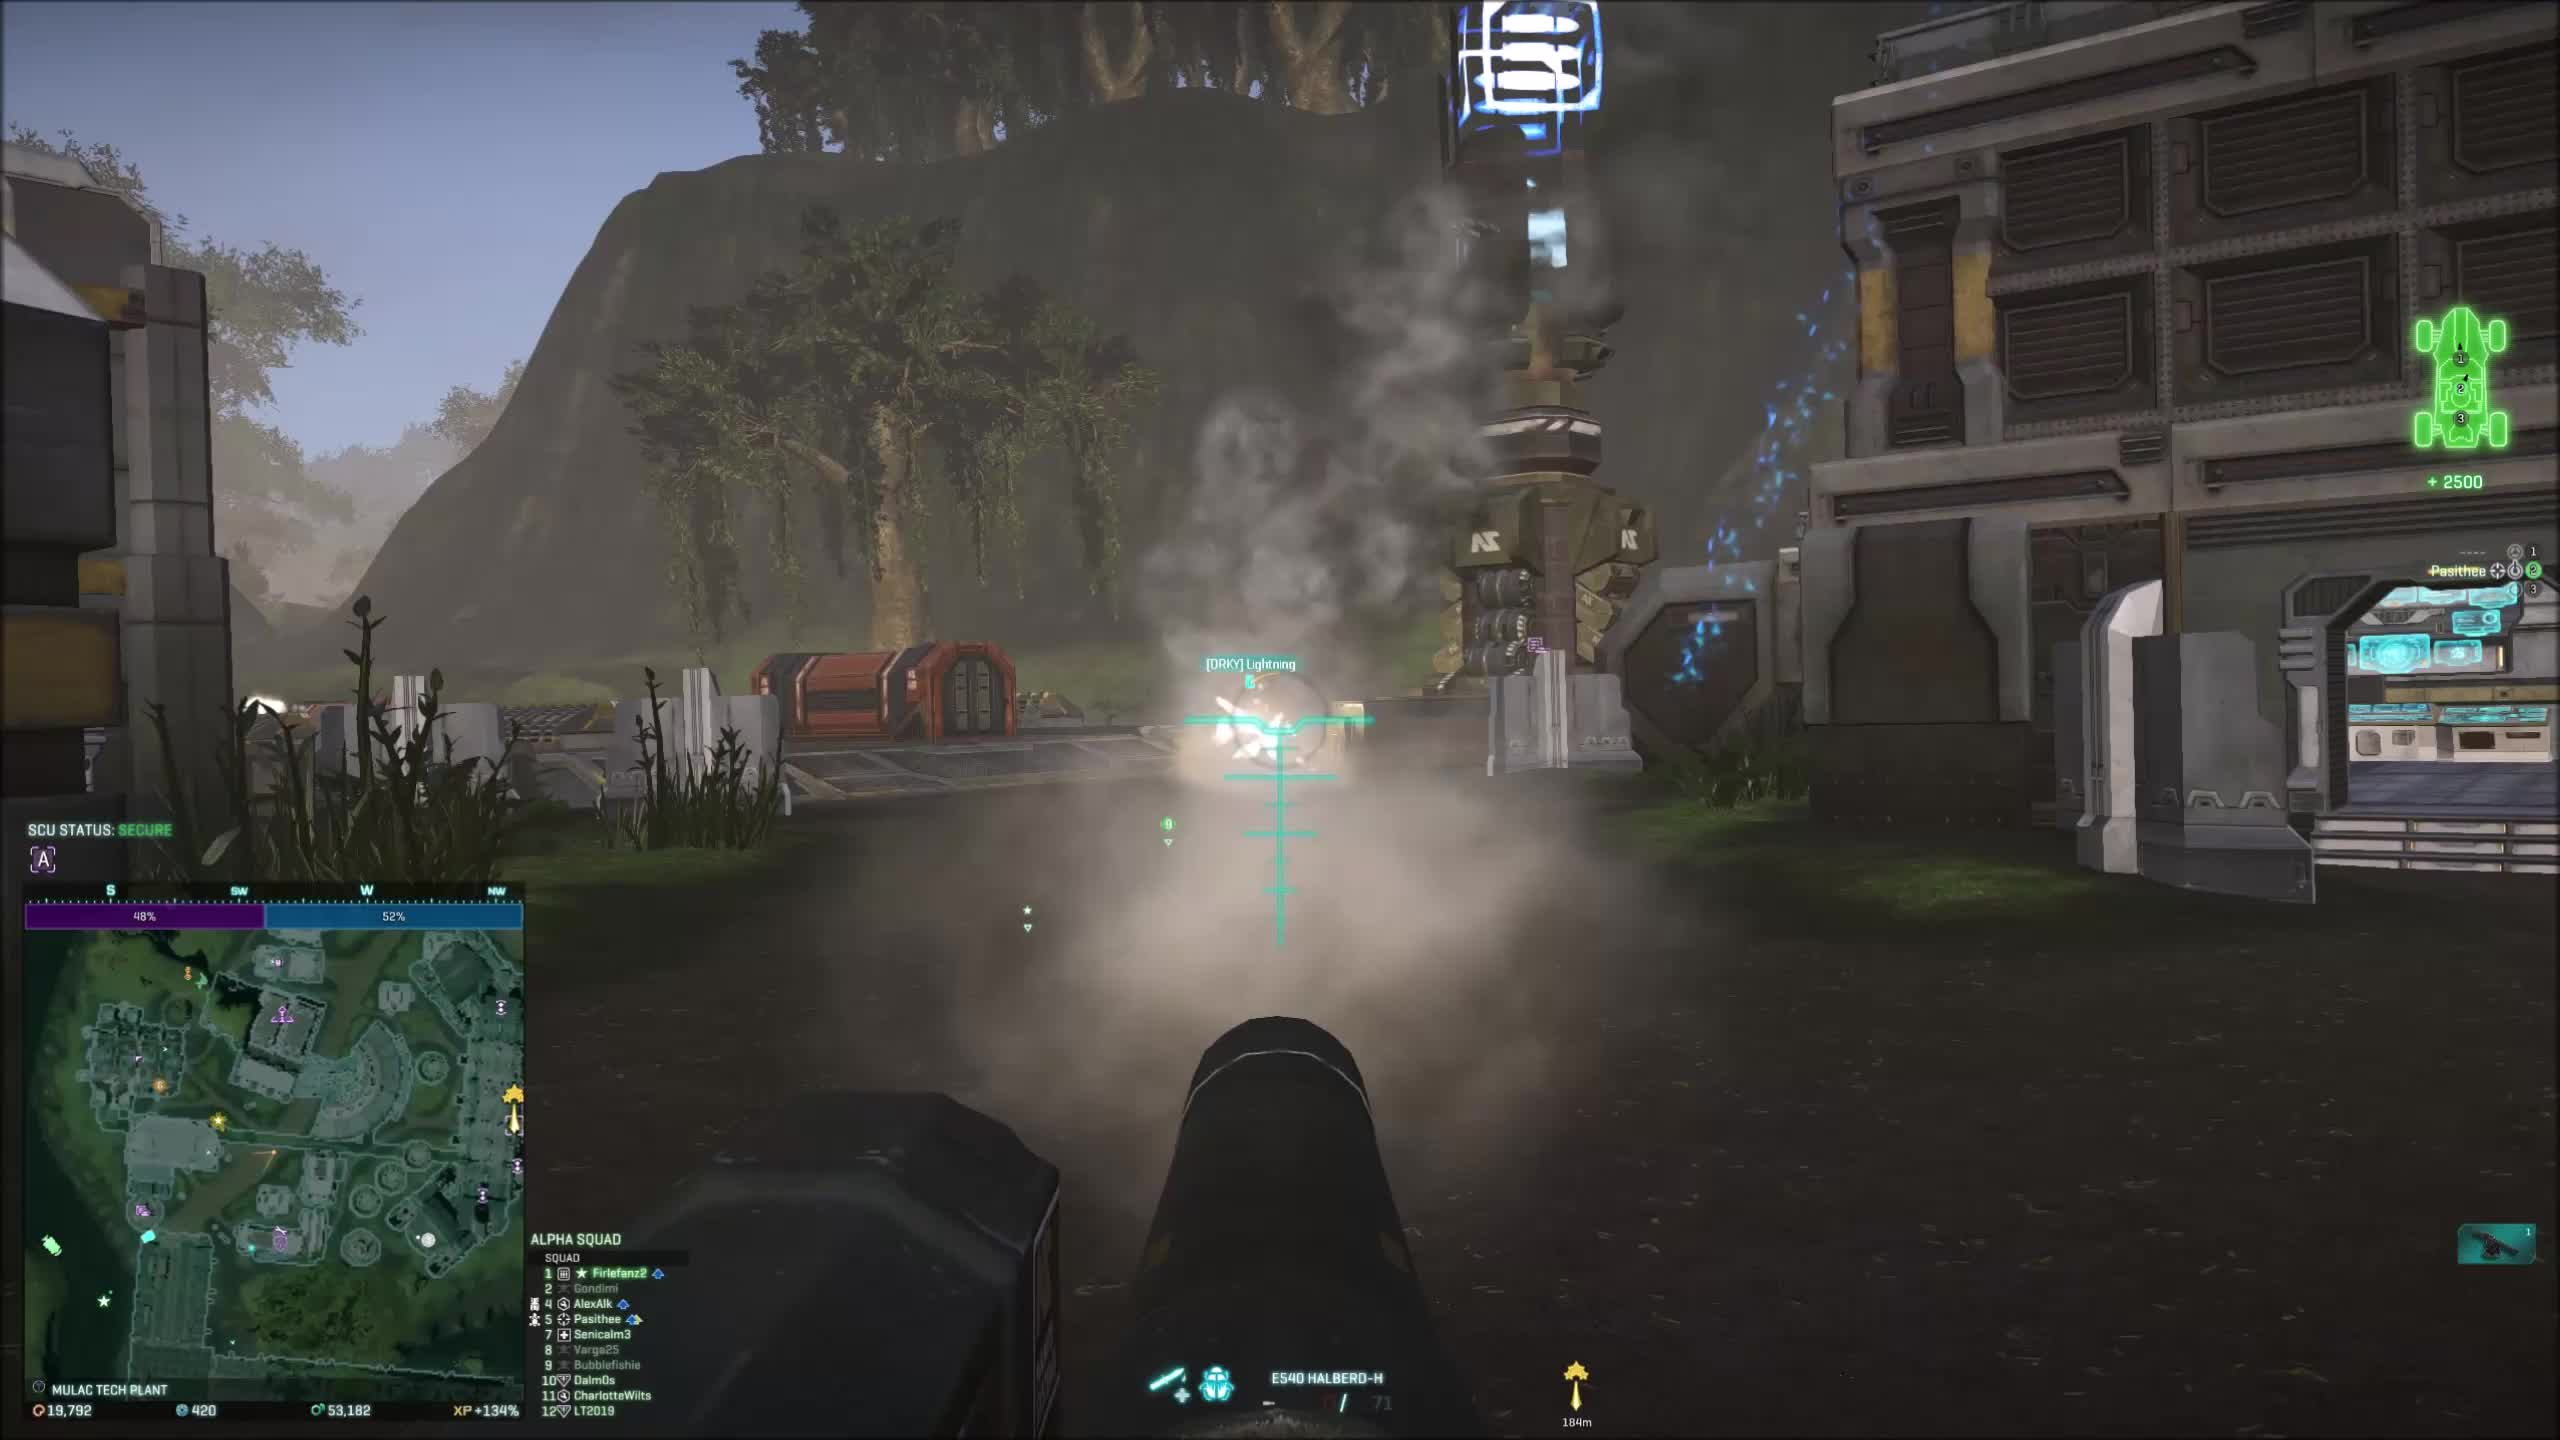 planetside, planetside 2, planetside2, ps2, Casual Near Death Experience GIFs